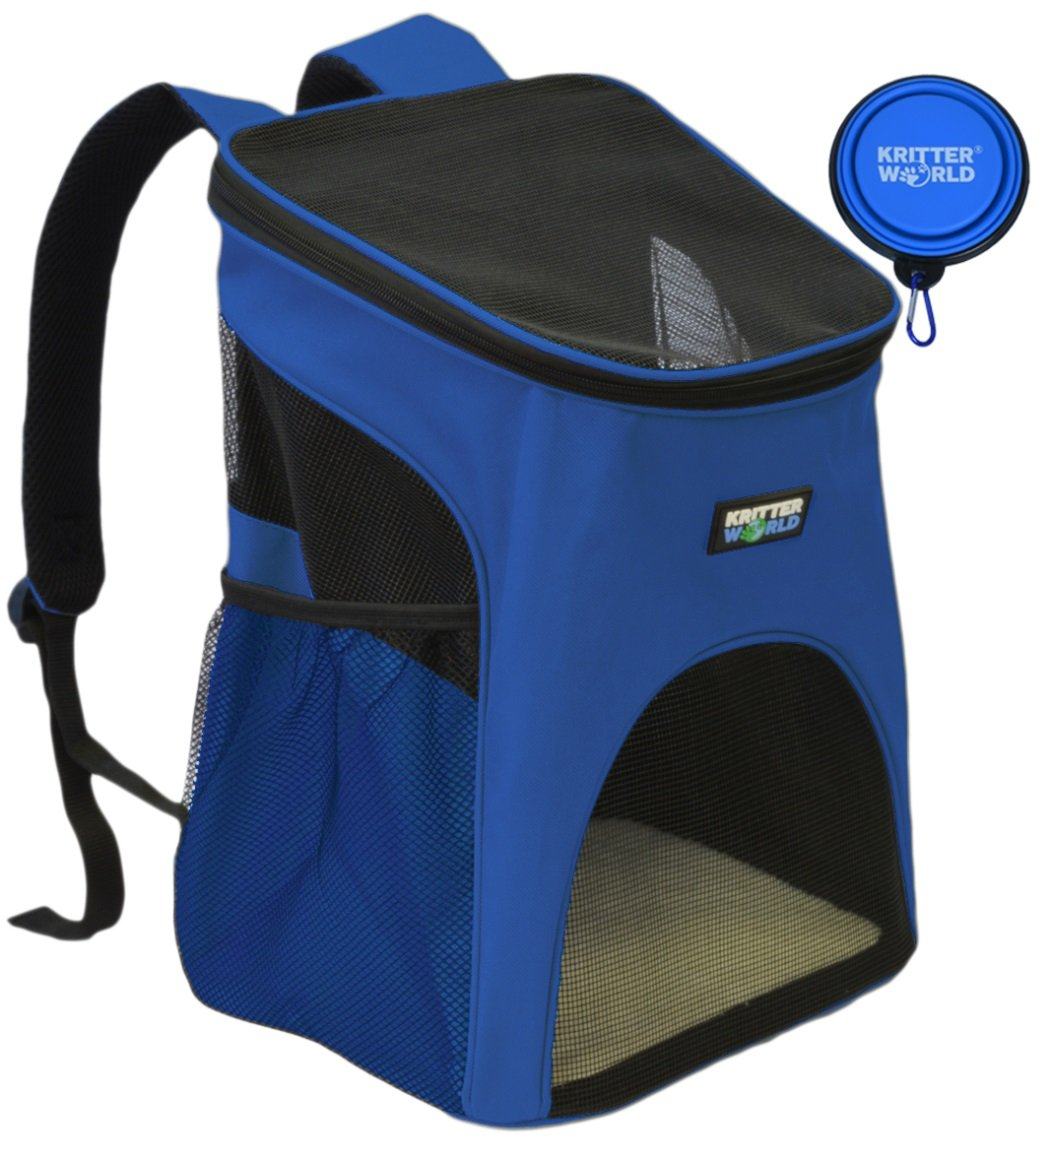 KritterWorld Pet Carrier Backpack for Small Dogs, Puppies, Cats, Kittens Up to 7lbs, Free Collapsible Dog Bowl Included, Comfort Mesh Pup Pack Great for A Walk, Travel, Hiking and Cycling, Blue